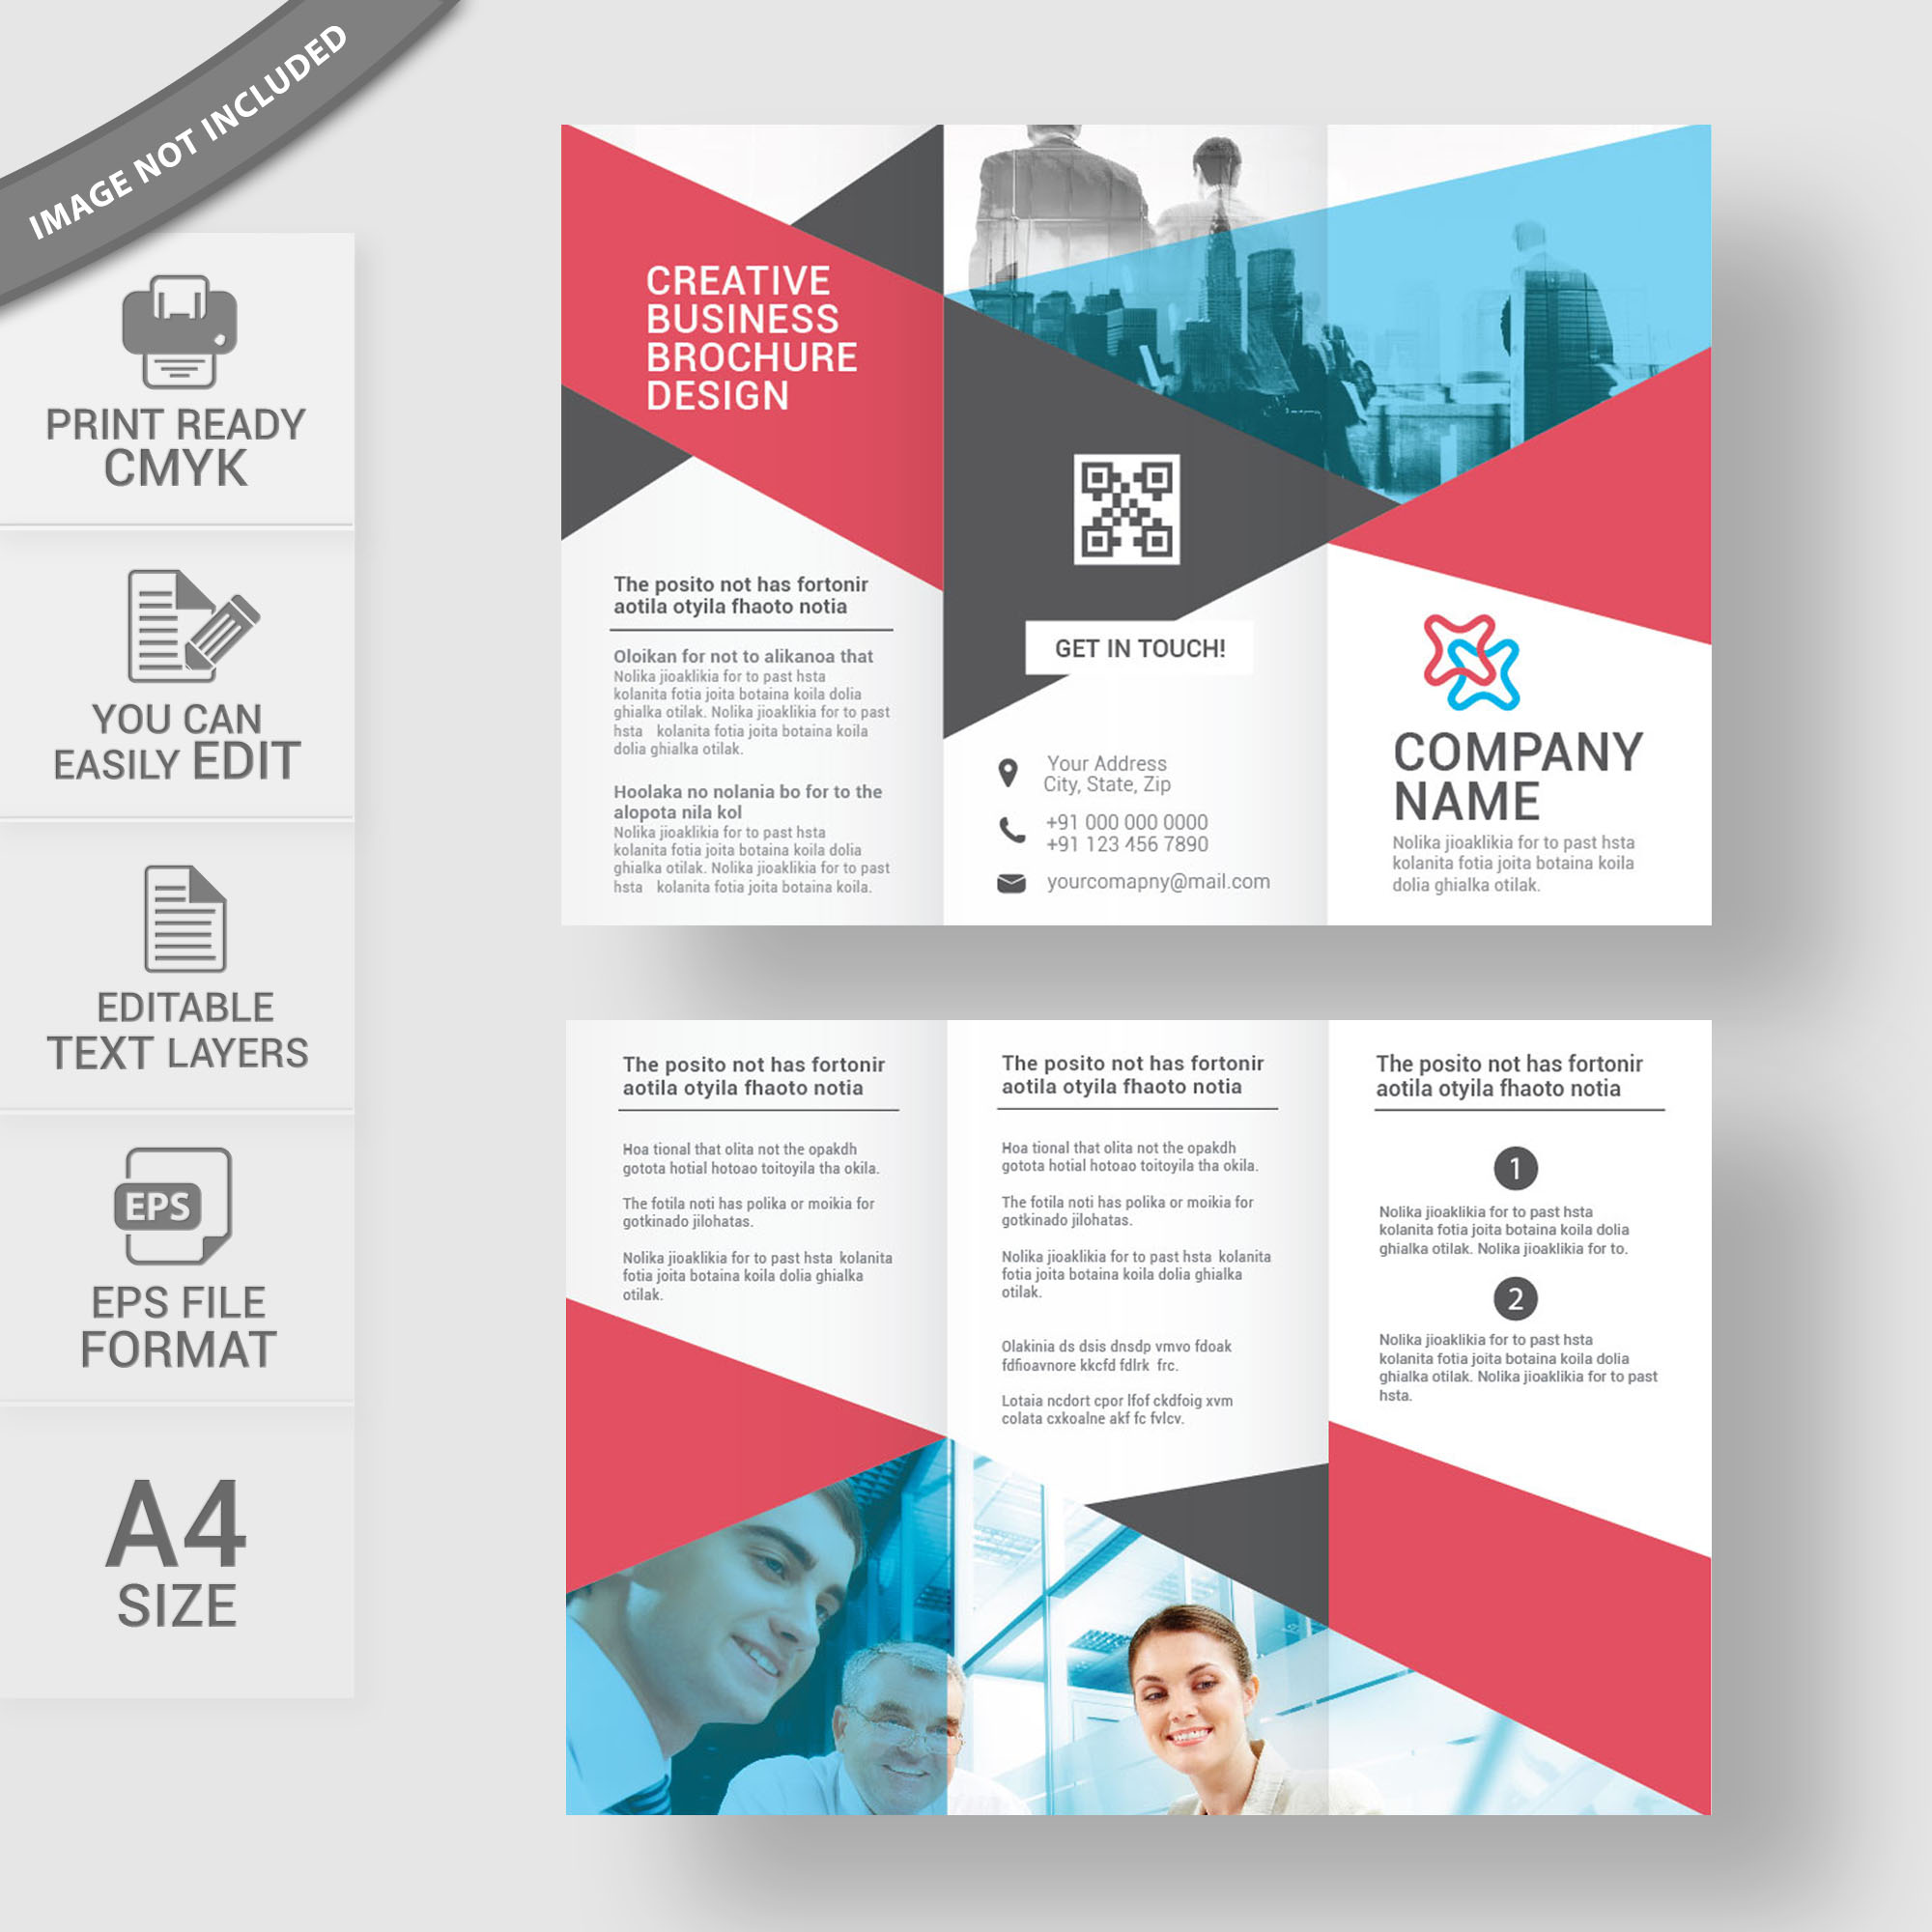 Trifold Brochure Template Free Download Wisxicom - Free download tri fold brochure template